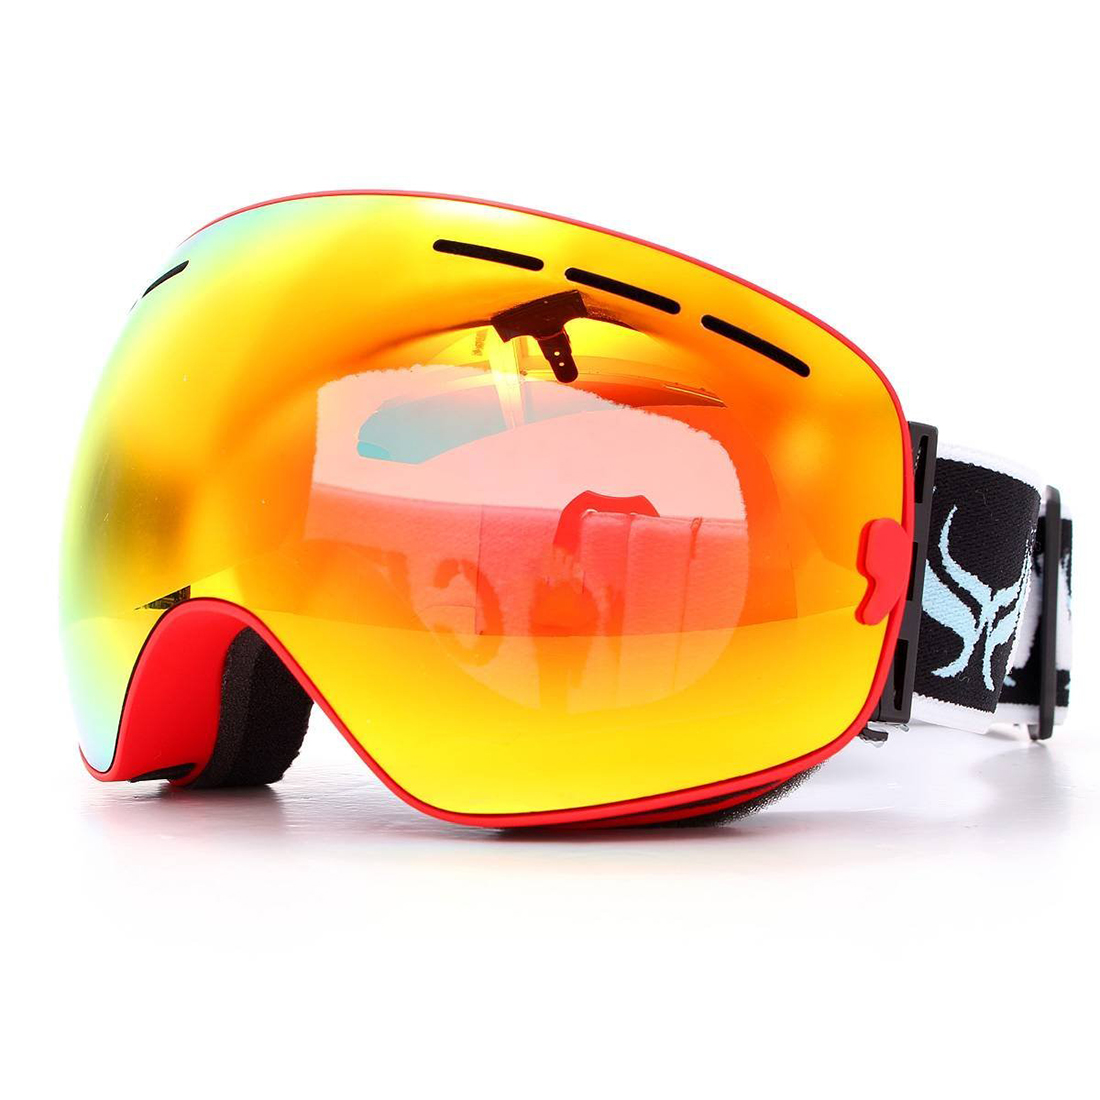 New Sale BENICE ski goggles double layer anti-fog eyes red frame